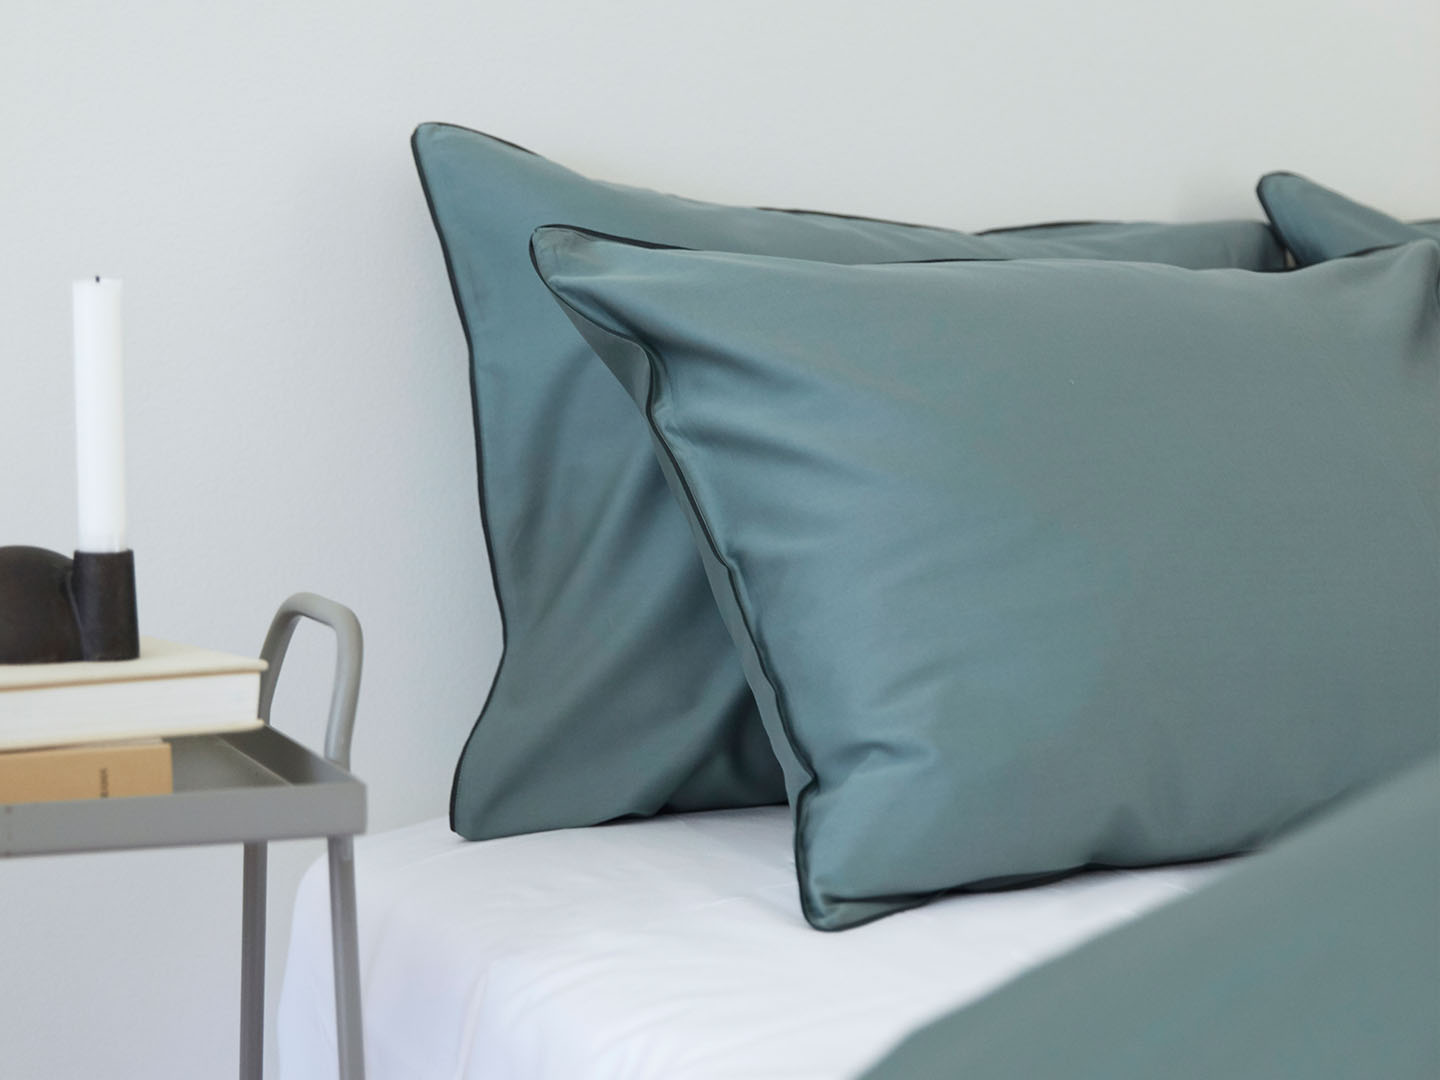 Pillowcase Strimma - Washed Bottle Green in the group Bedding / Pillowcases at A L V A (1047)